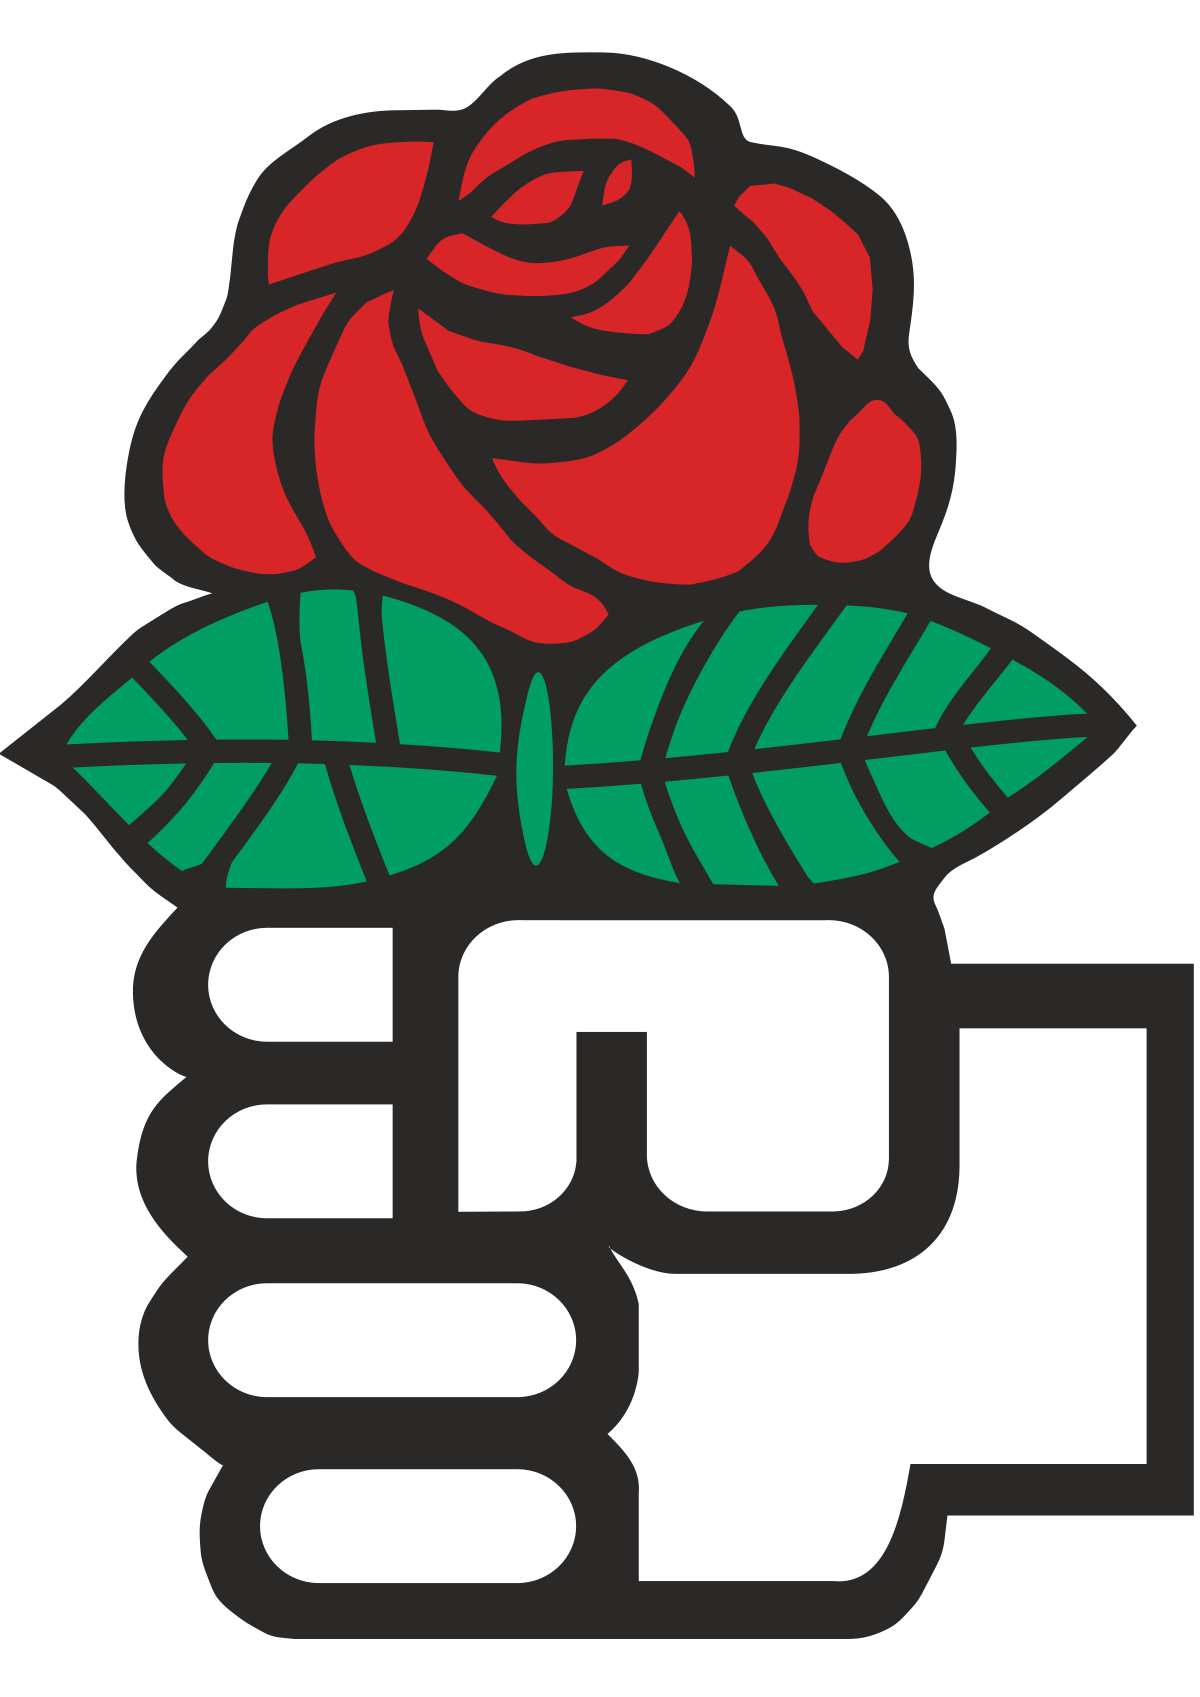 Socialist international wikipedia philosophy theory culture red rose logo of the socialist international an international organization of social democratic parties biocorpaavc Image collections